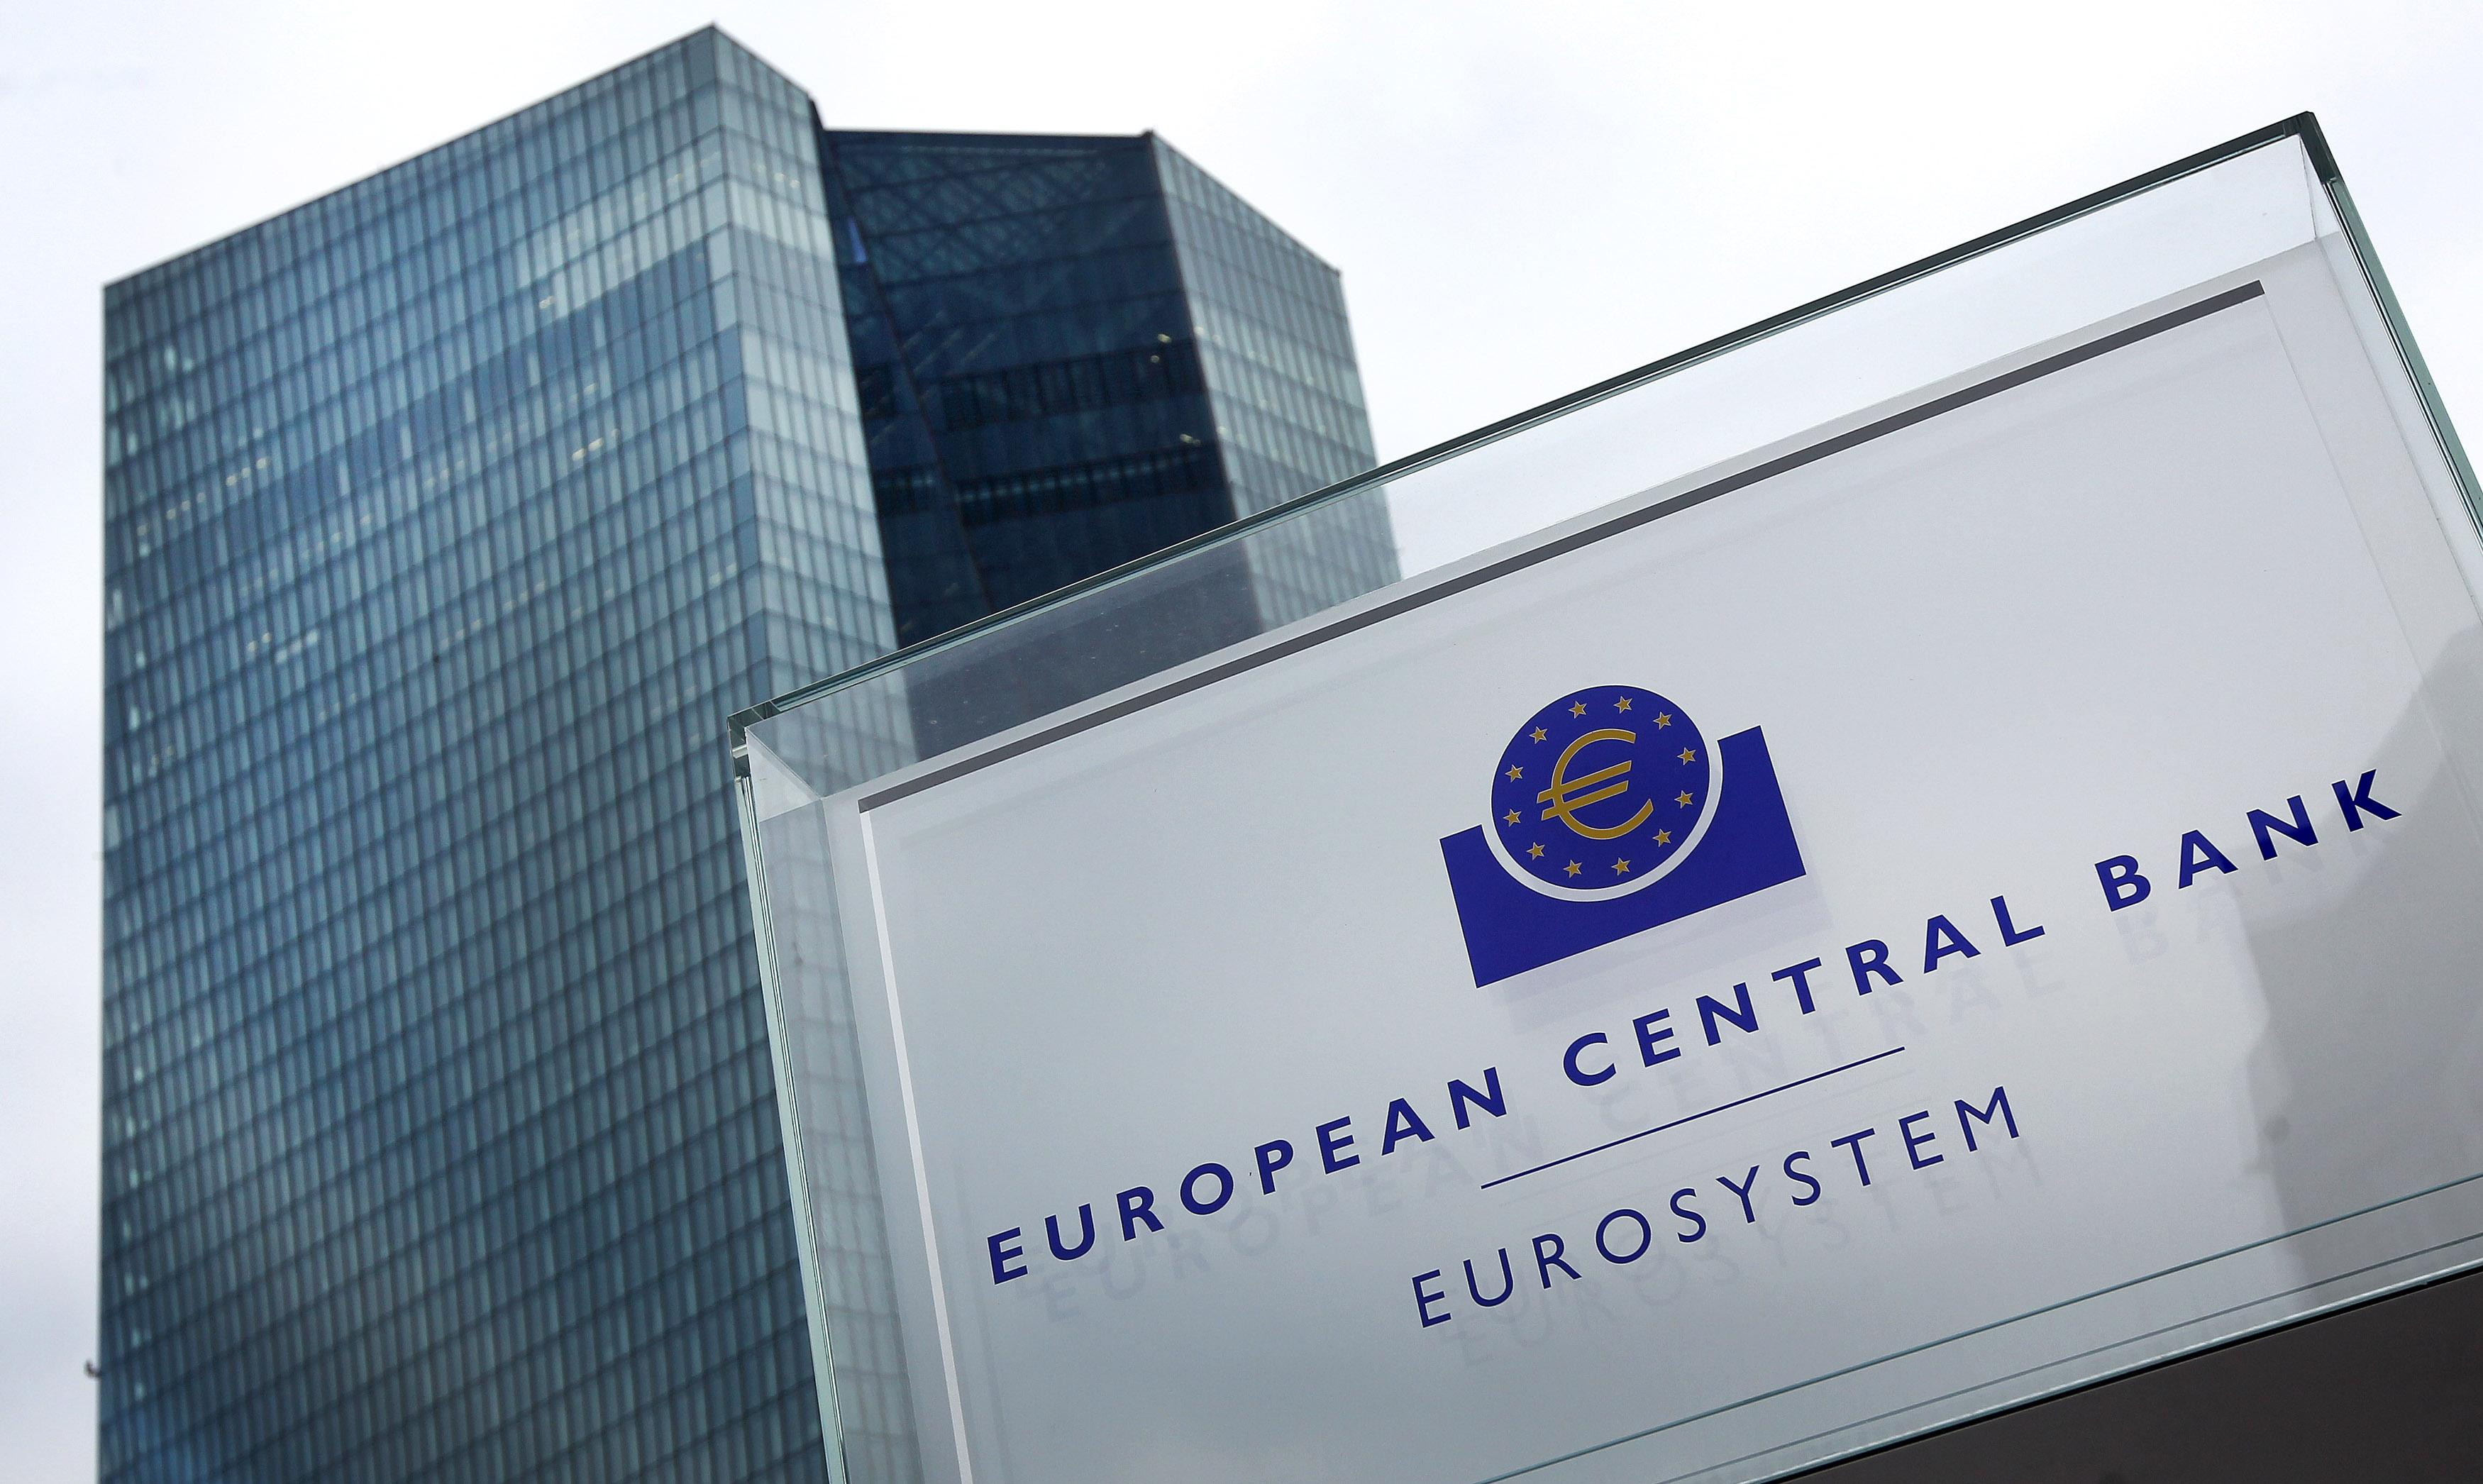 European Central Bank GettyImages-499737778